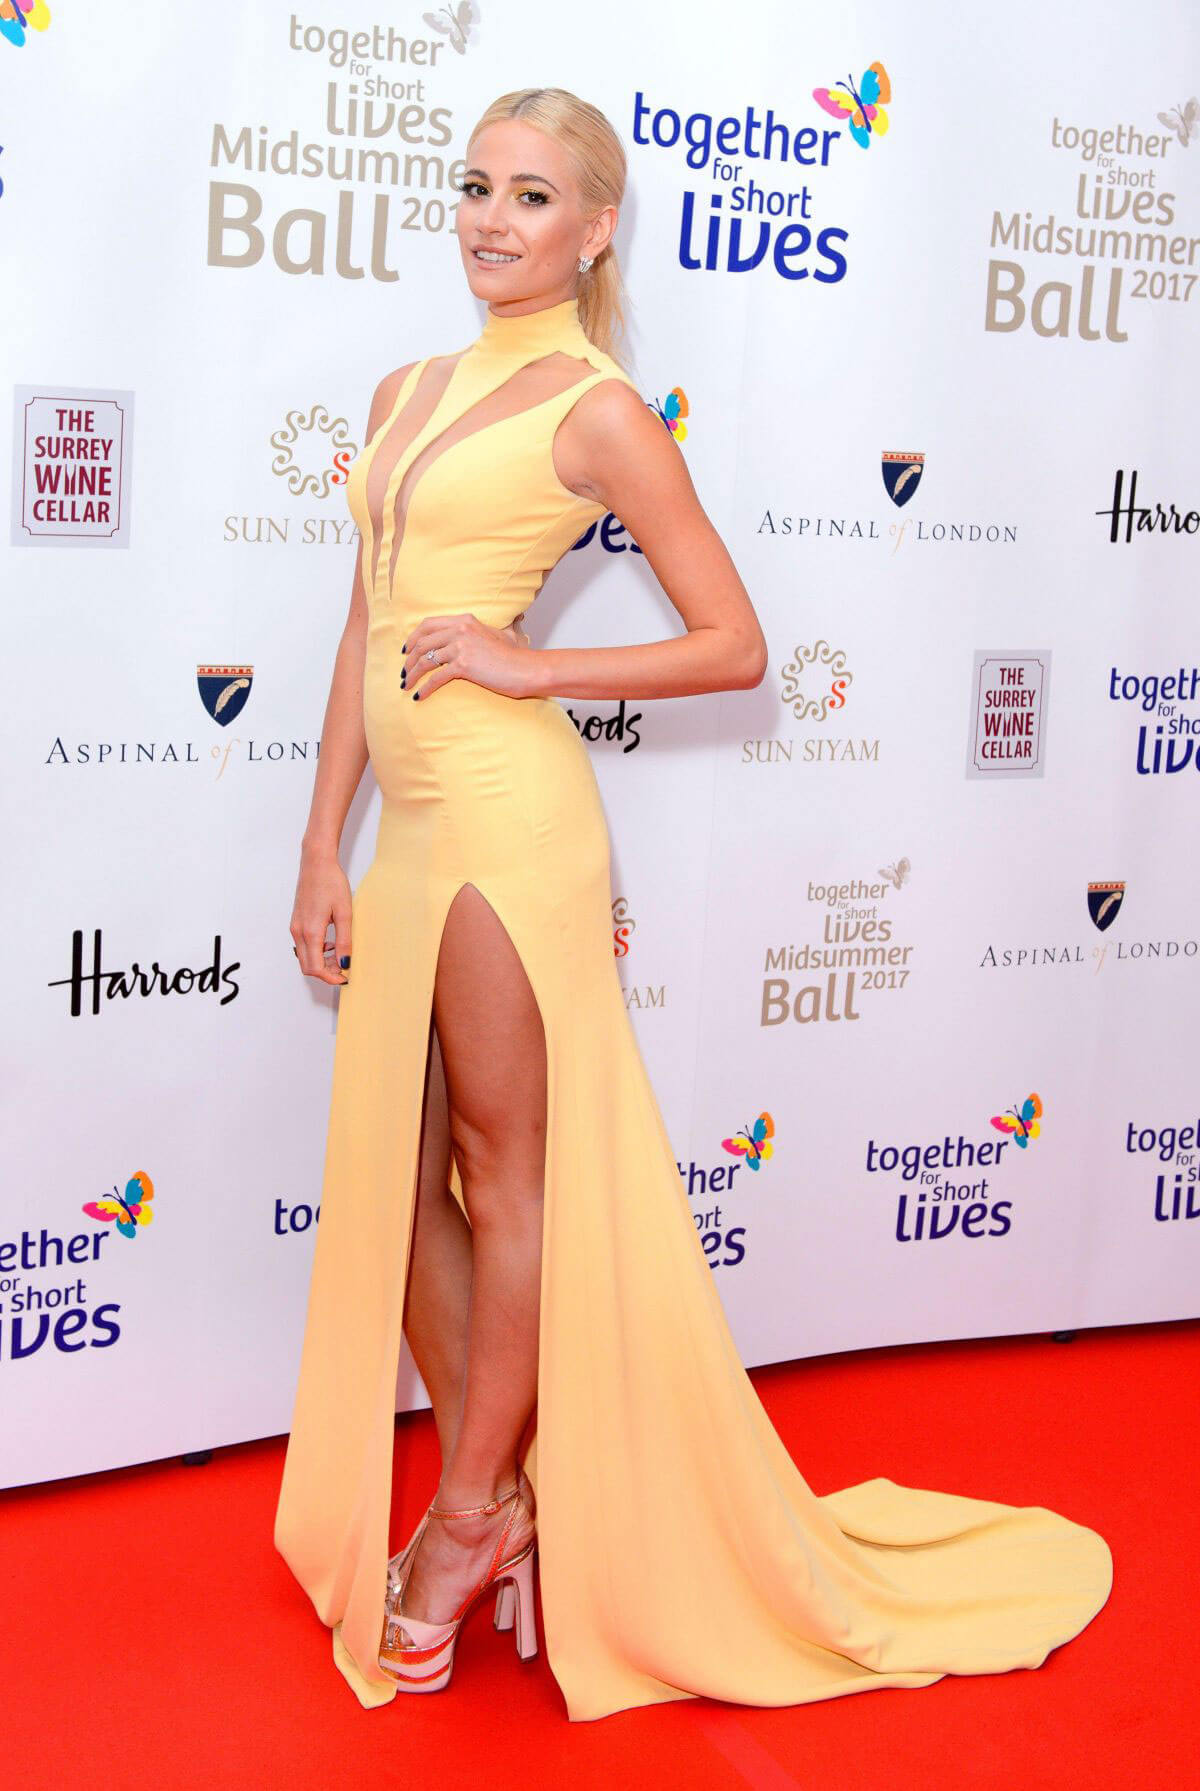 PIXIE LOTT at Together for Short Lives Midsummer Ball in London